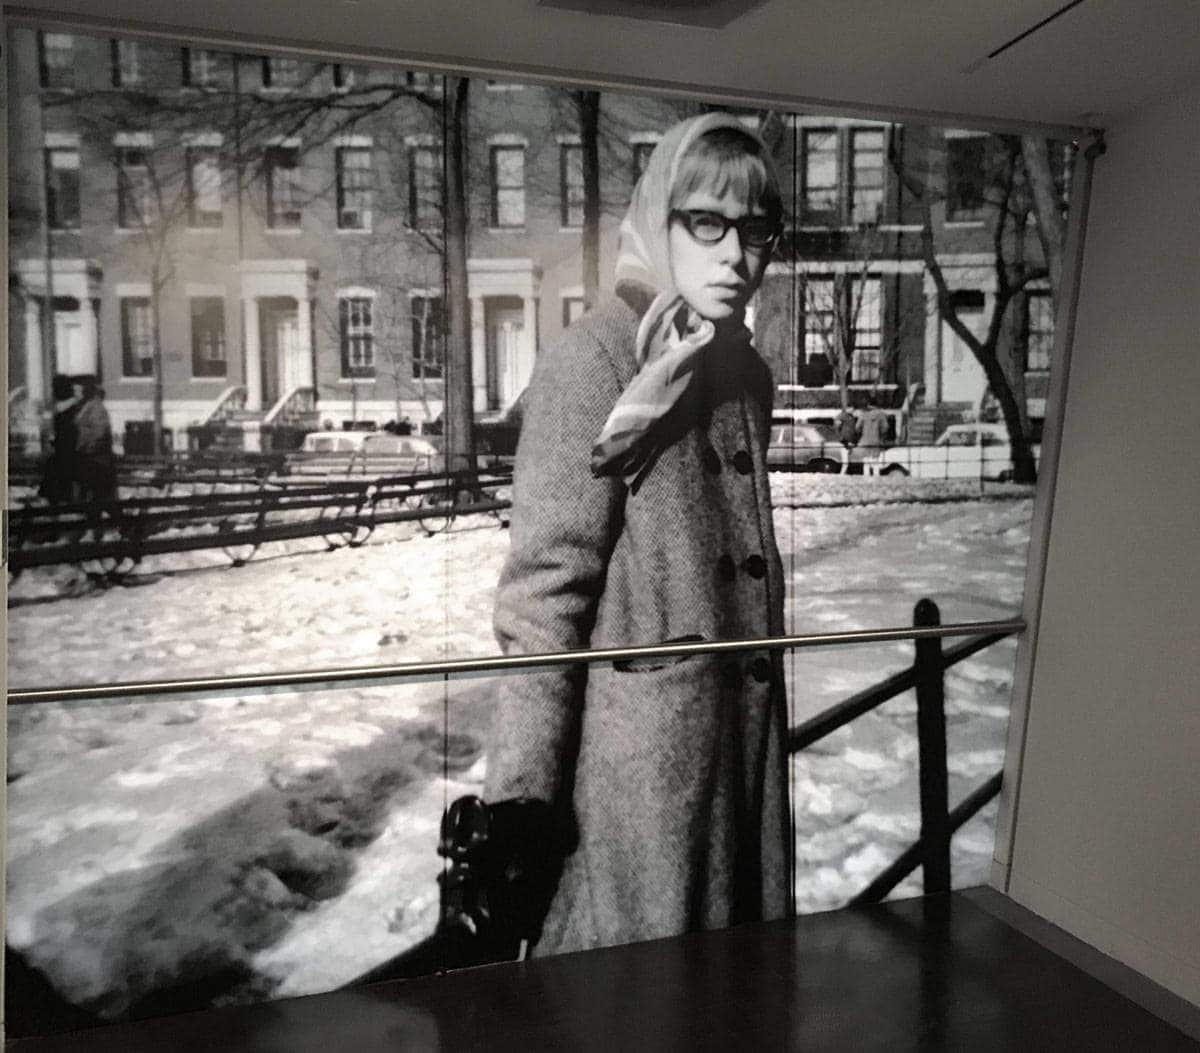 Roz Chast Black and White Portrait Mural at The CJM Backlit Film